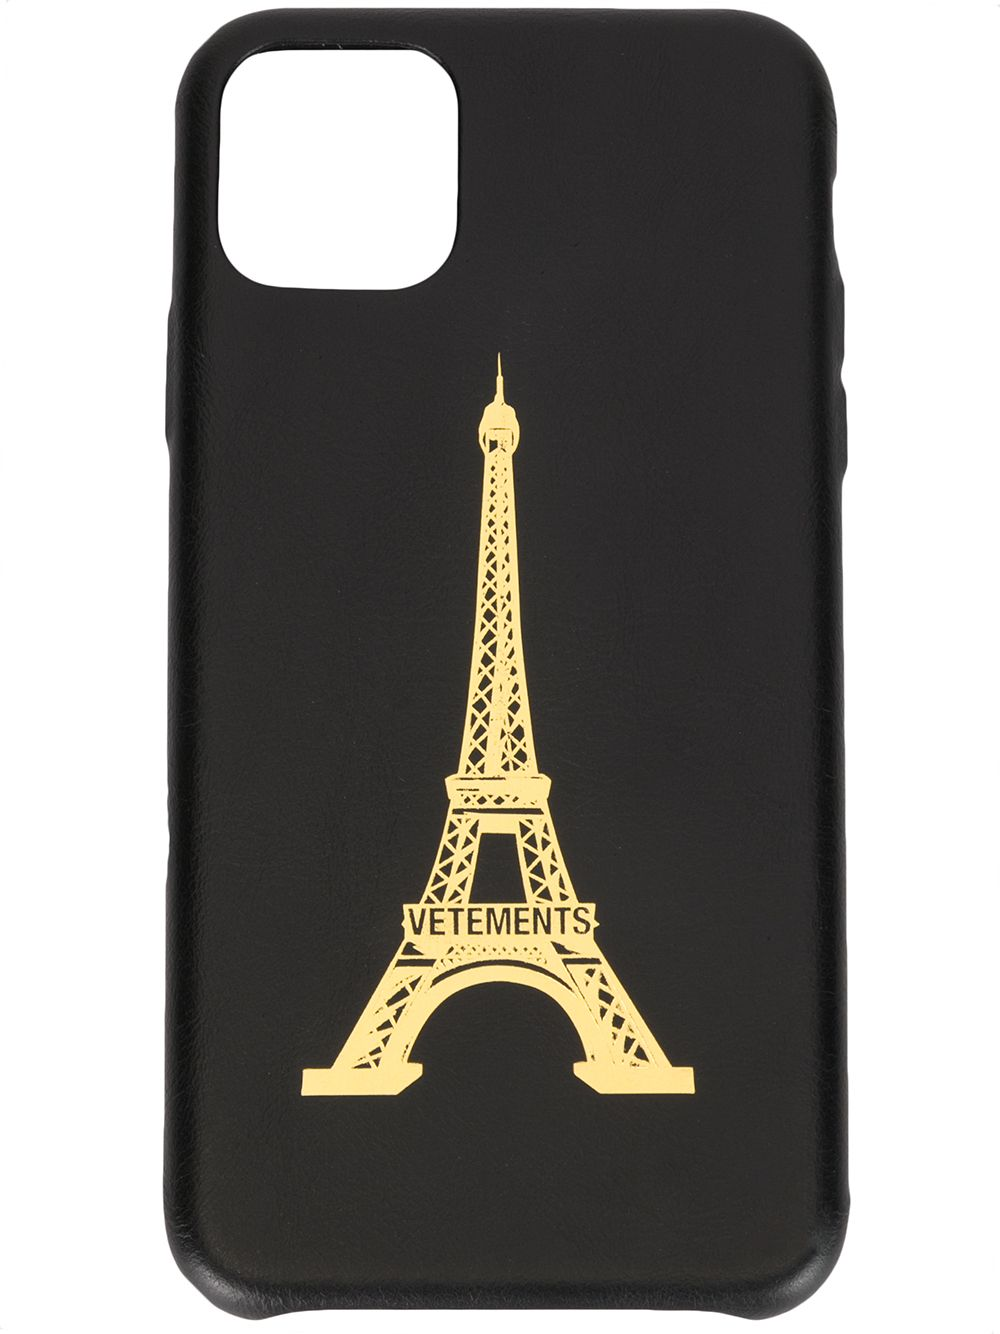 VETEMENTS EIFFEL TOWER IPHONE 11 PRO MAX LEATHER CASE